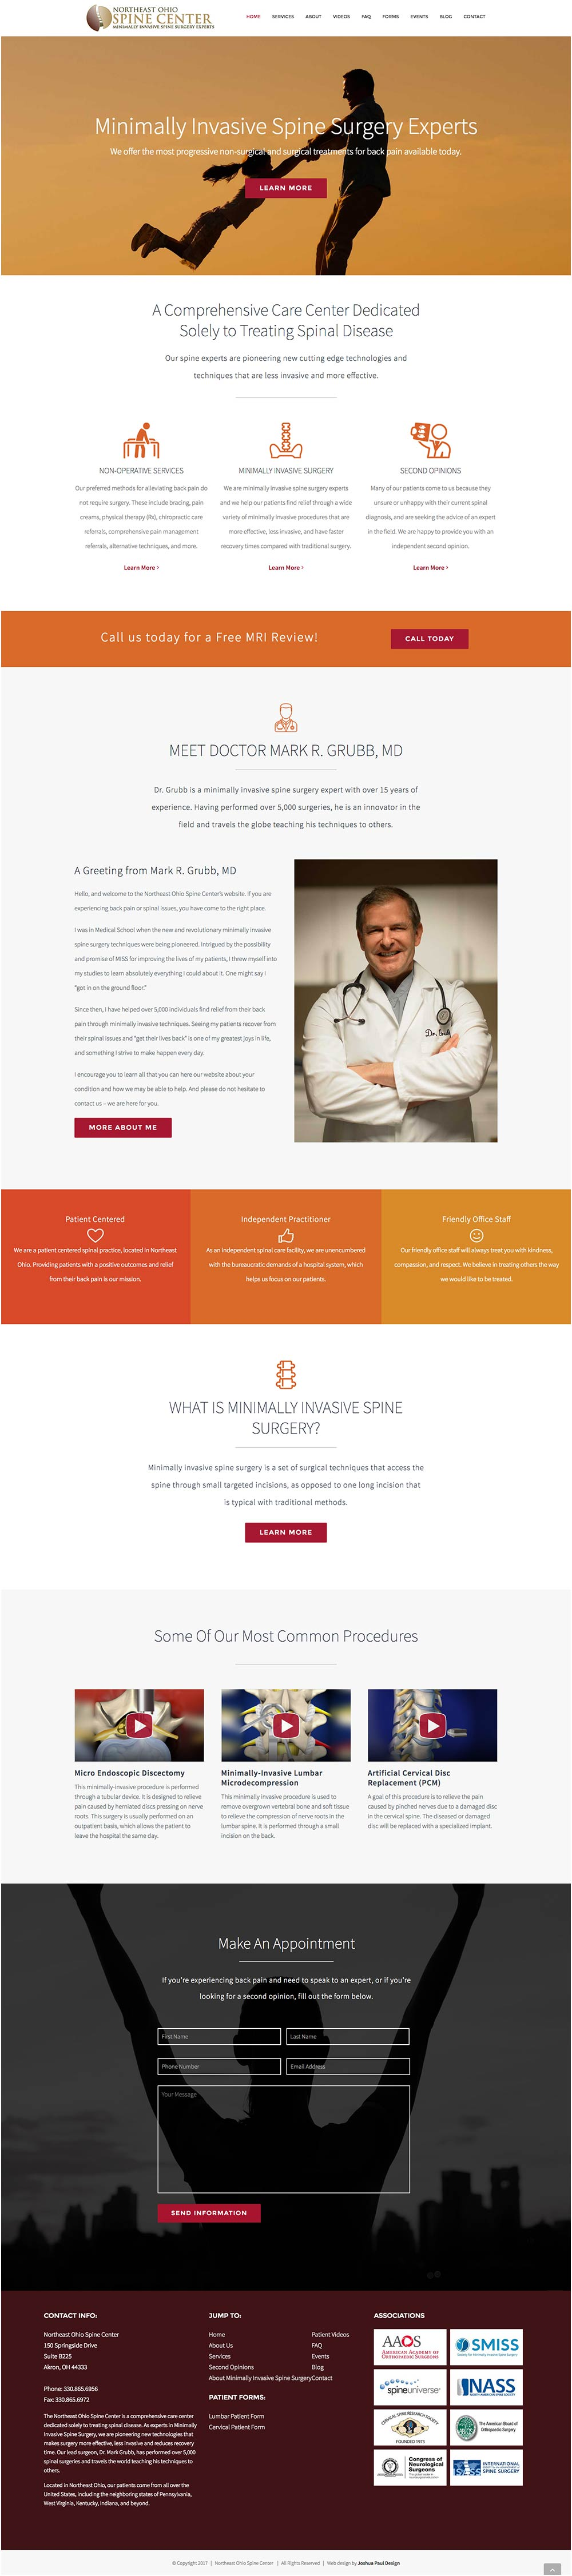 Northeast Ohio Spine Center Website Project 1